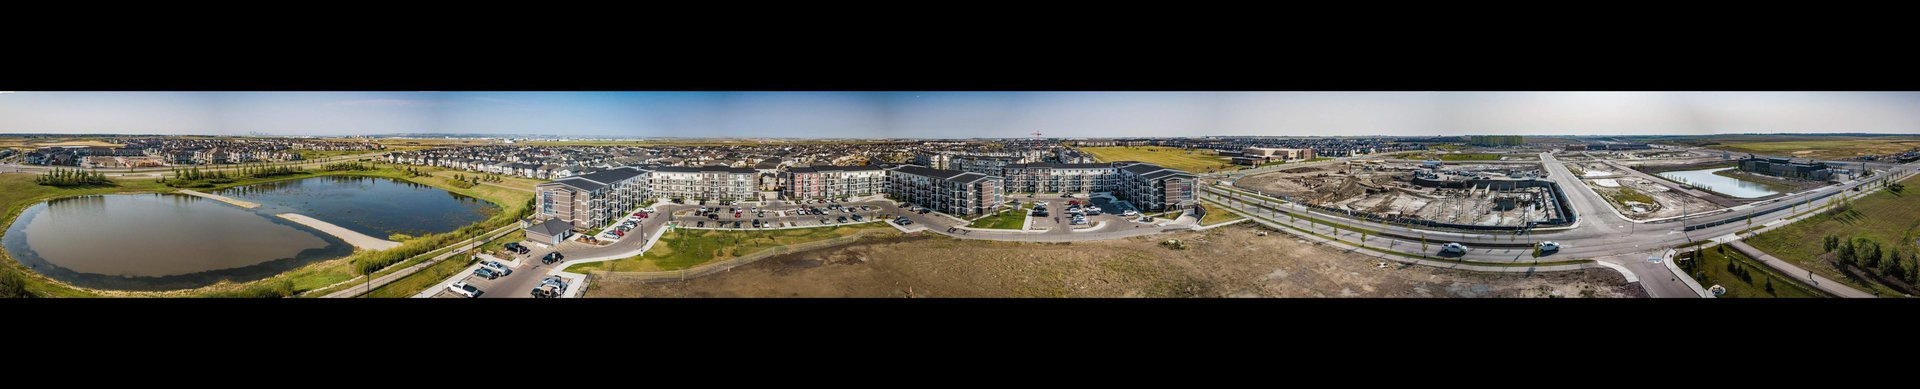 Mid-Rise-Apartment for rent at 355 Skyview Ranch Drive NE, Calgary, AB. Panoramic View of Vista